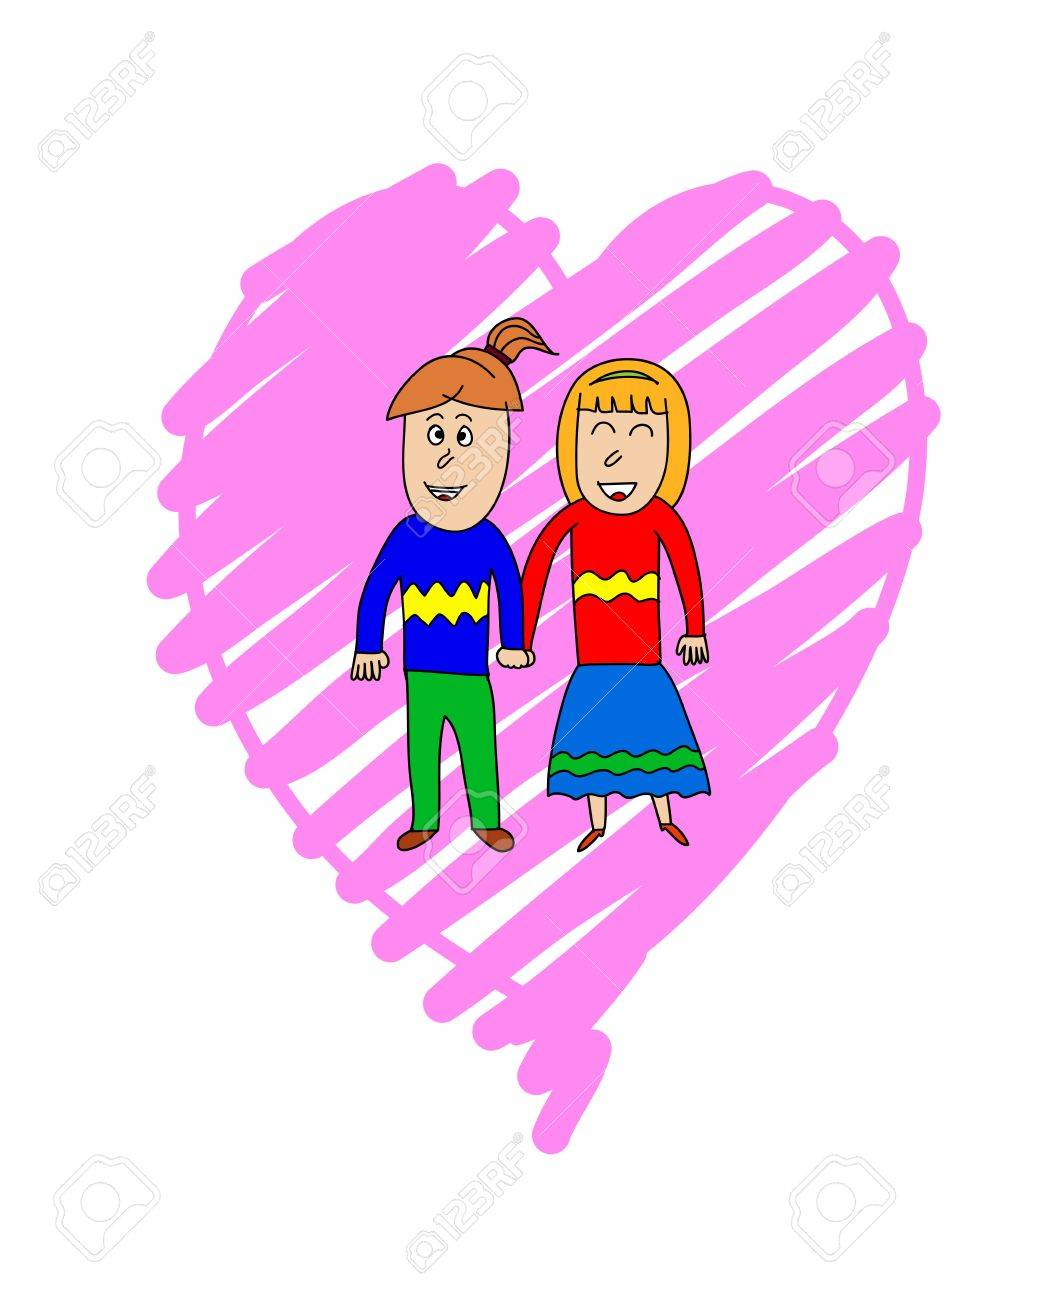 A couple in love holding hands over pink heart background. Valentine's Day two people in love holding hands. Stock Vector - 17333416